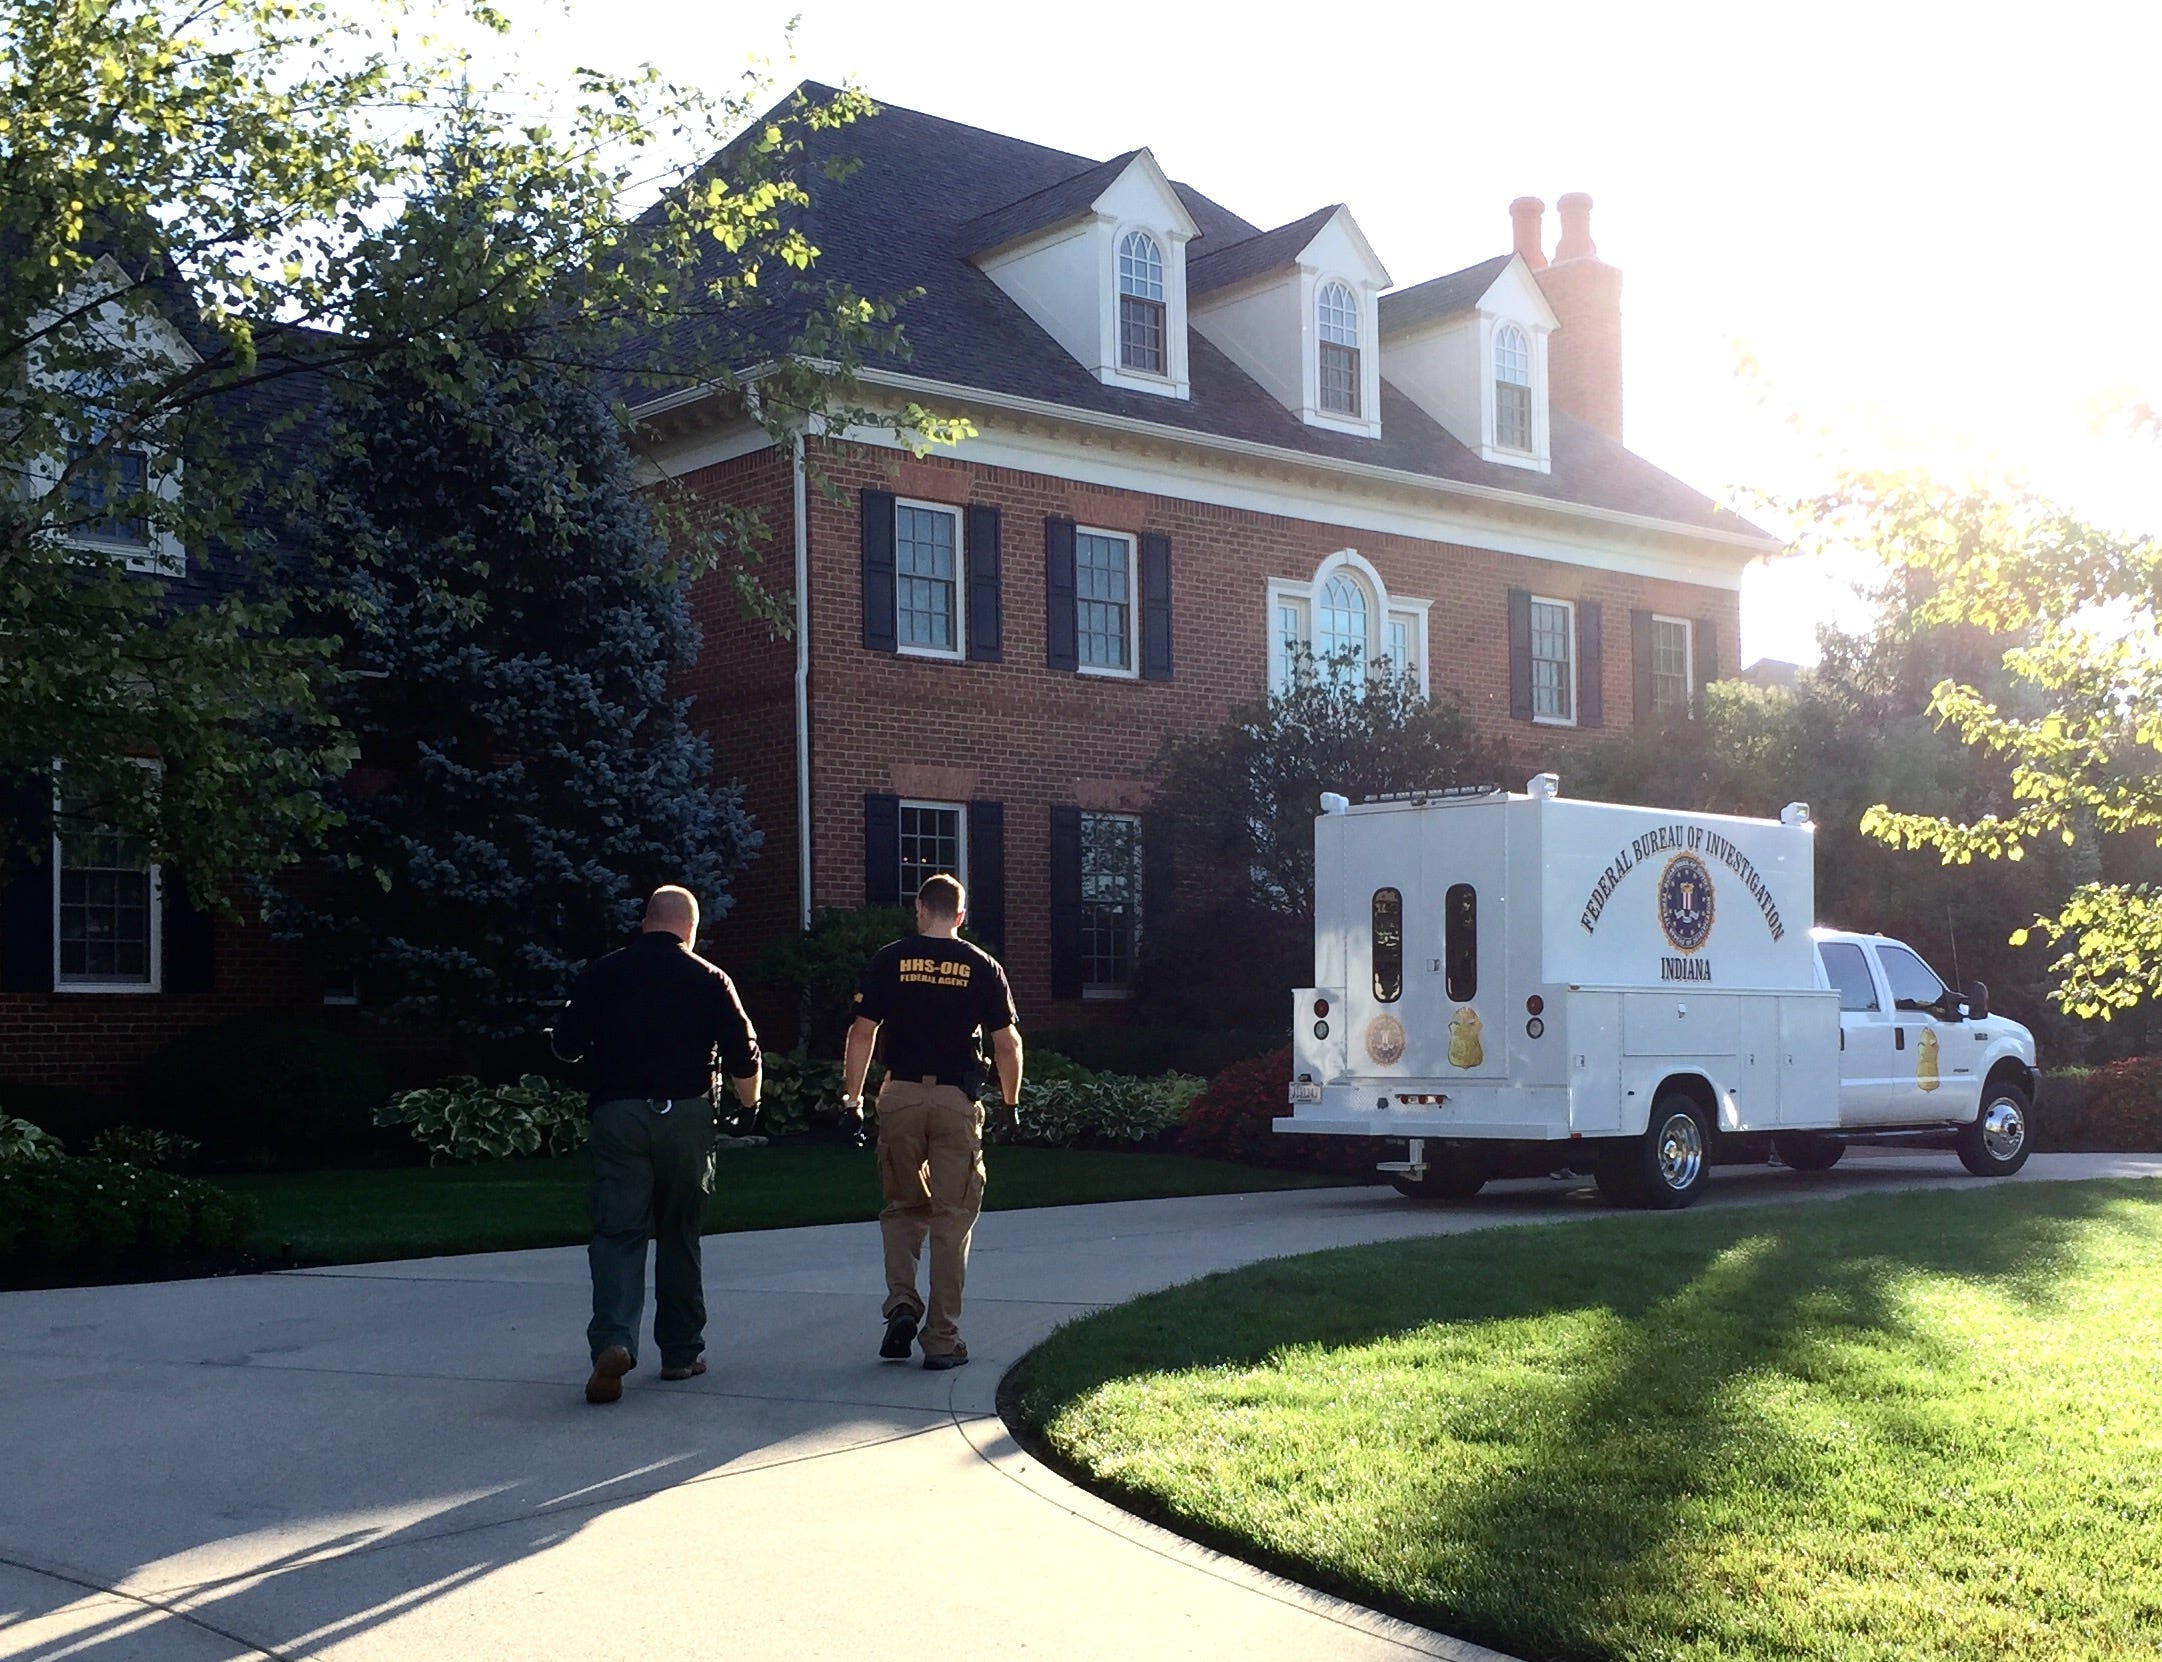 Evidence gathered by Dave Mazanowski led to an FBI raid on the home of James Burkhart, former CEO of American Senior Communities.